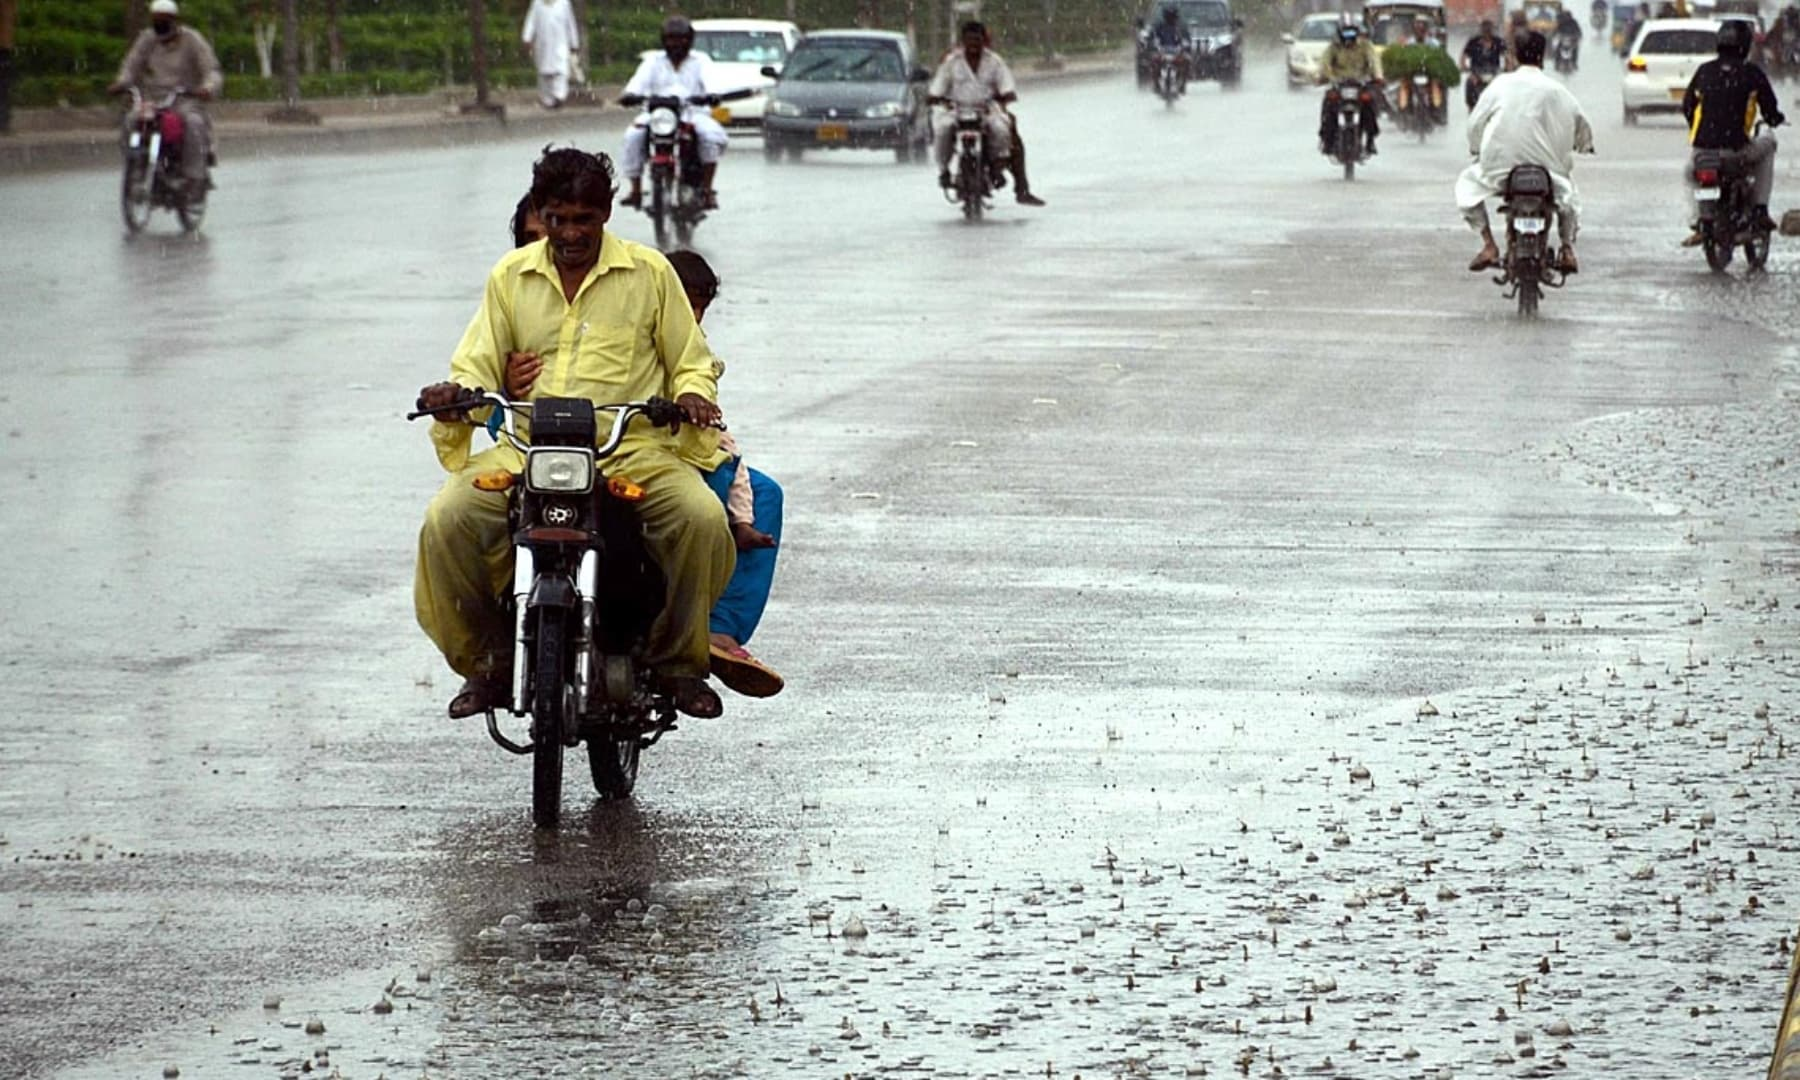 Vehicles on the road during rain in Karachi on Wednesday. — APP